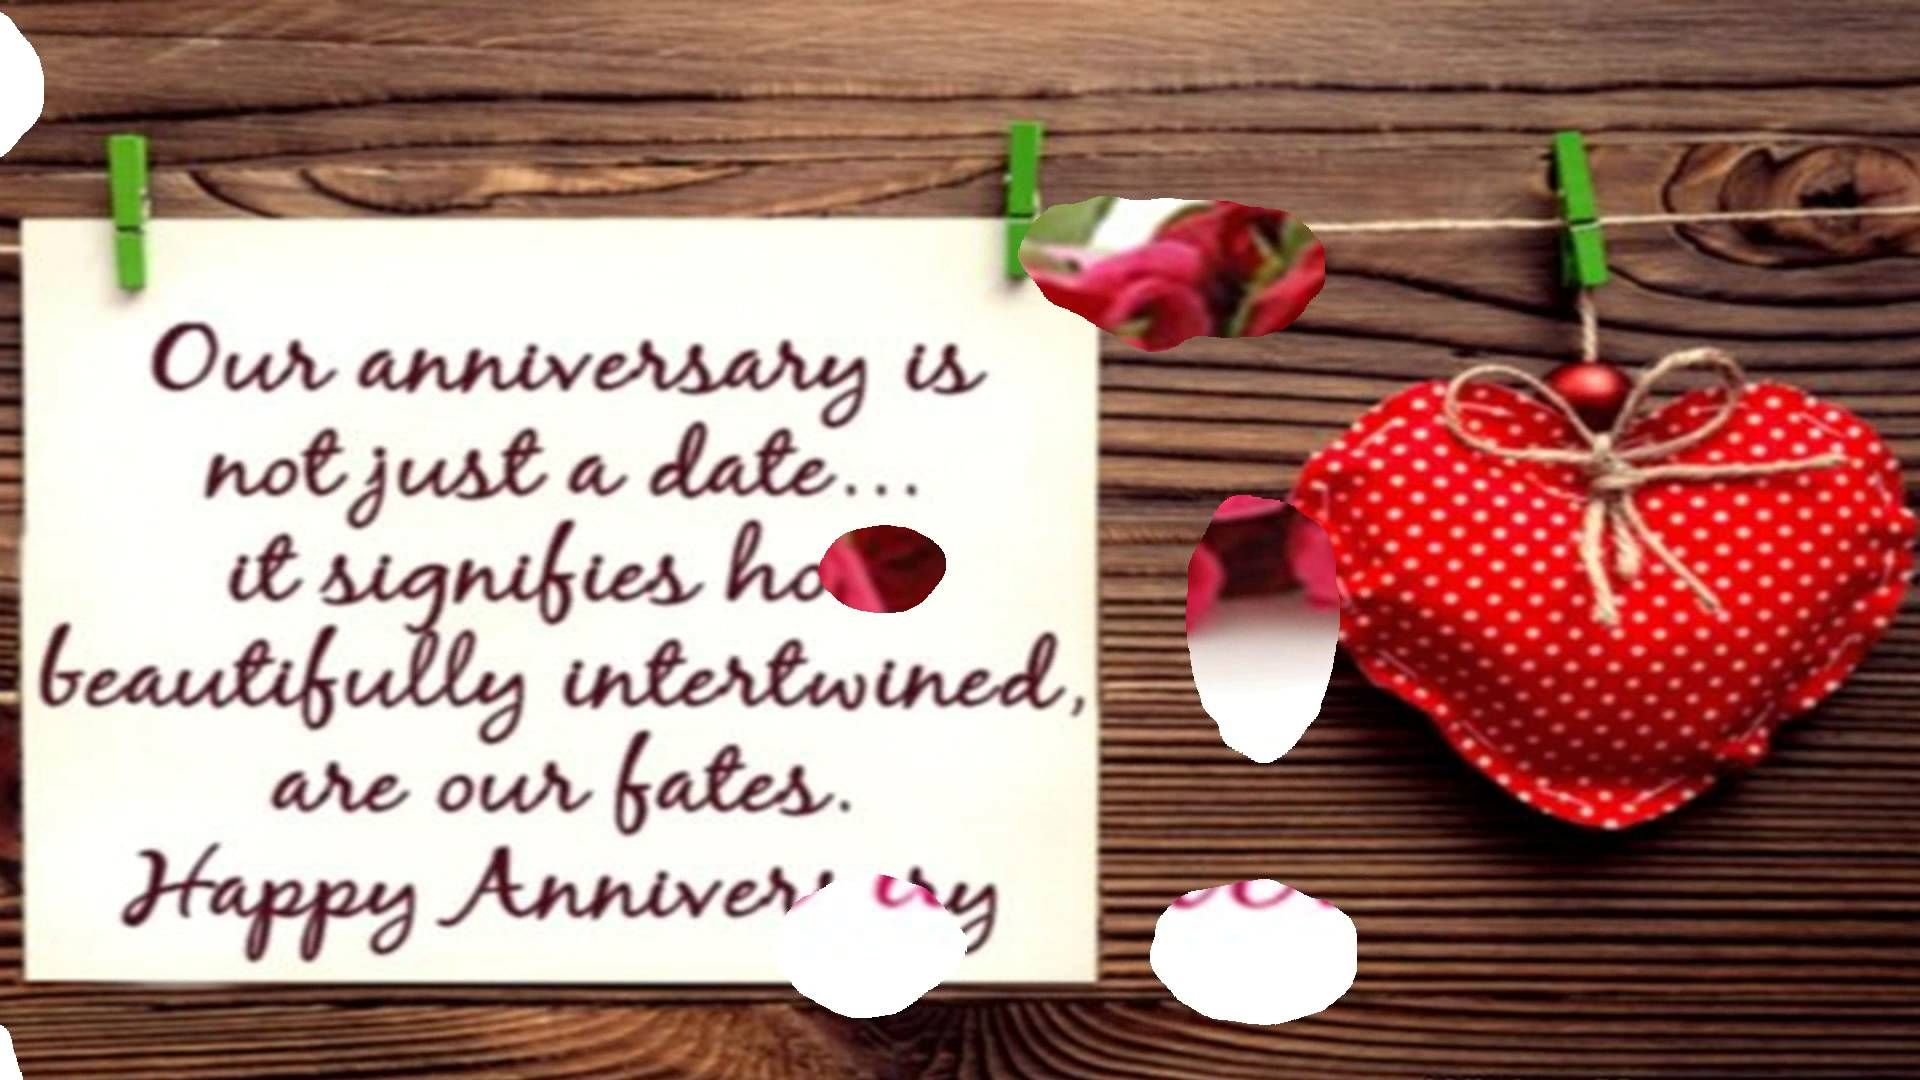 Happy anniversary wishes for couple mother s day activities